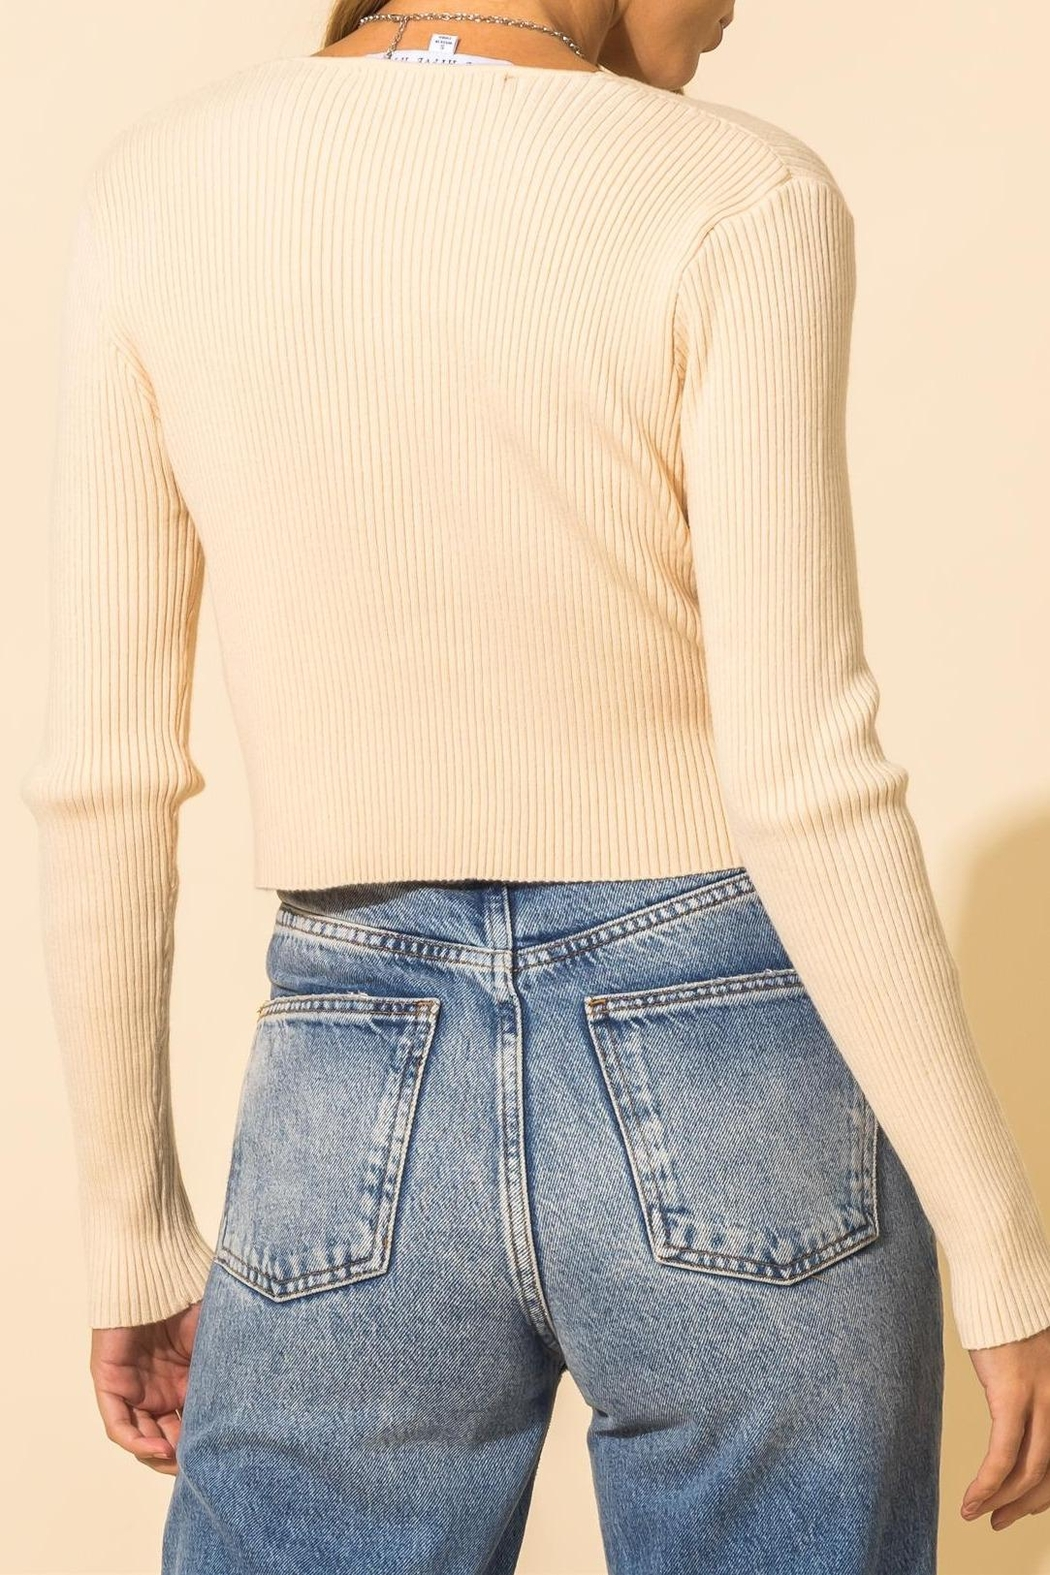 HYFVE Ribbed Knot Crop Sweater - Back Cropped Image